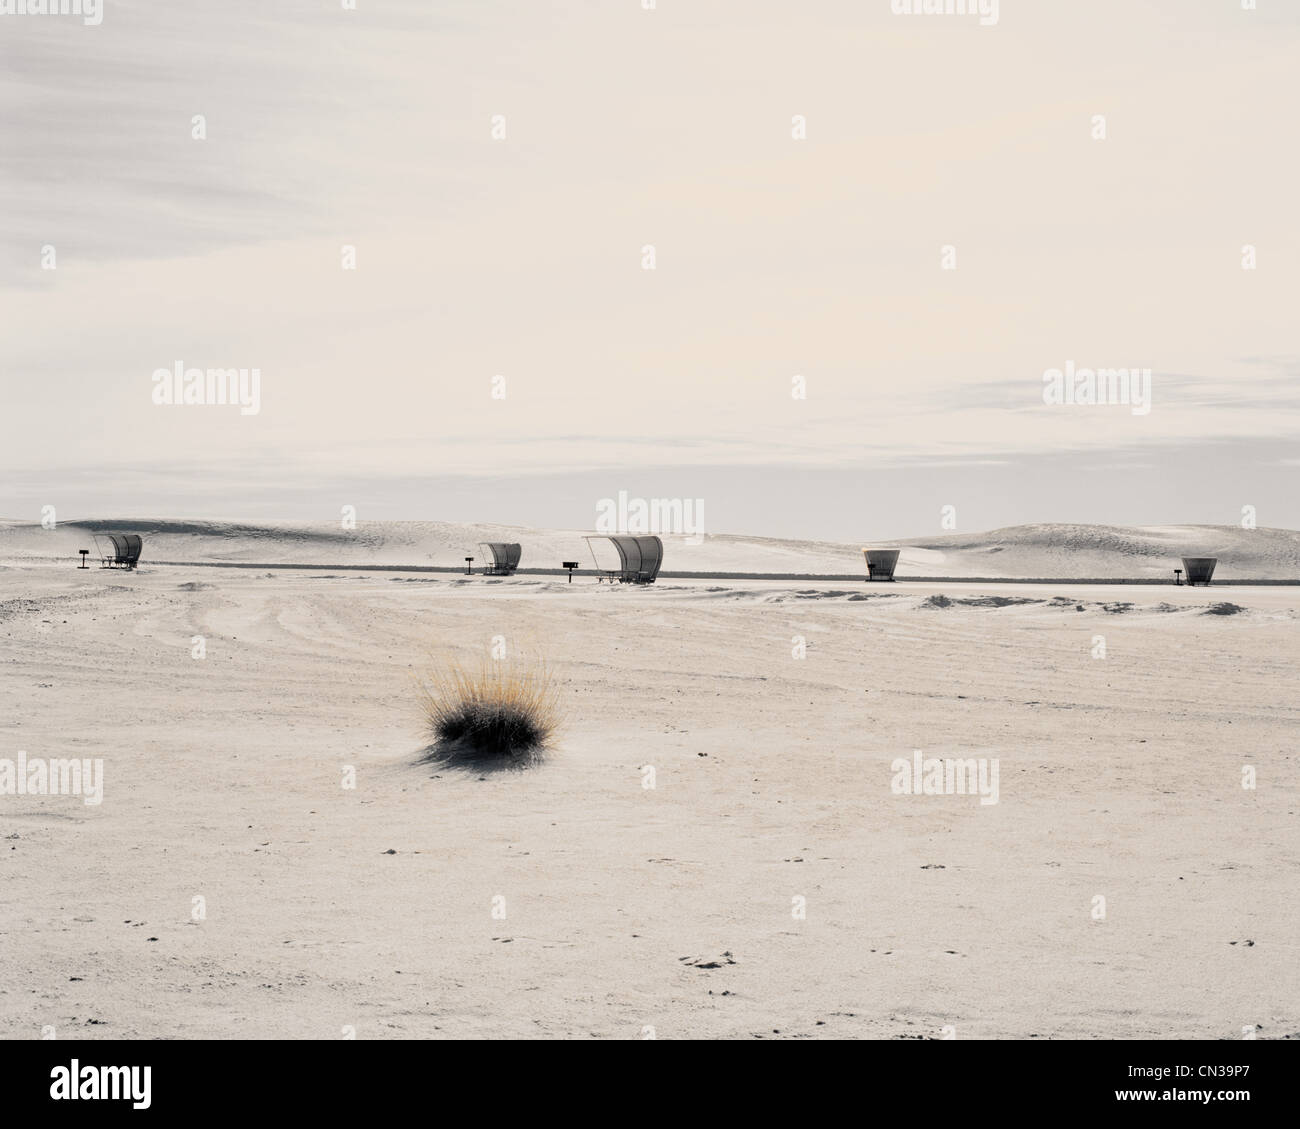 Shelters in White Sands National Park, New Mexico, USA - Stock Image